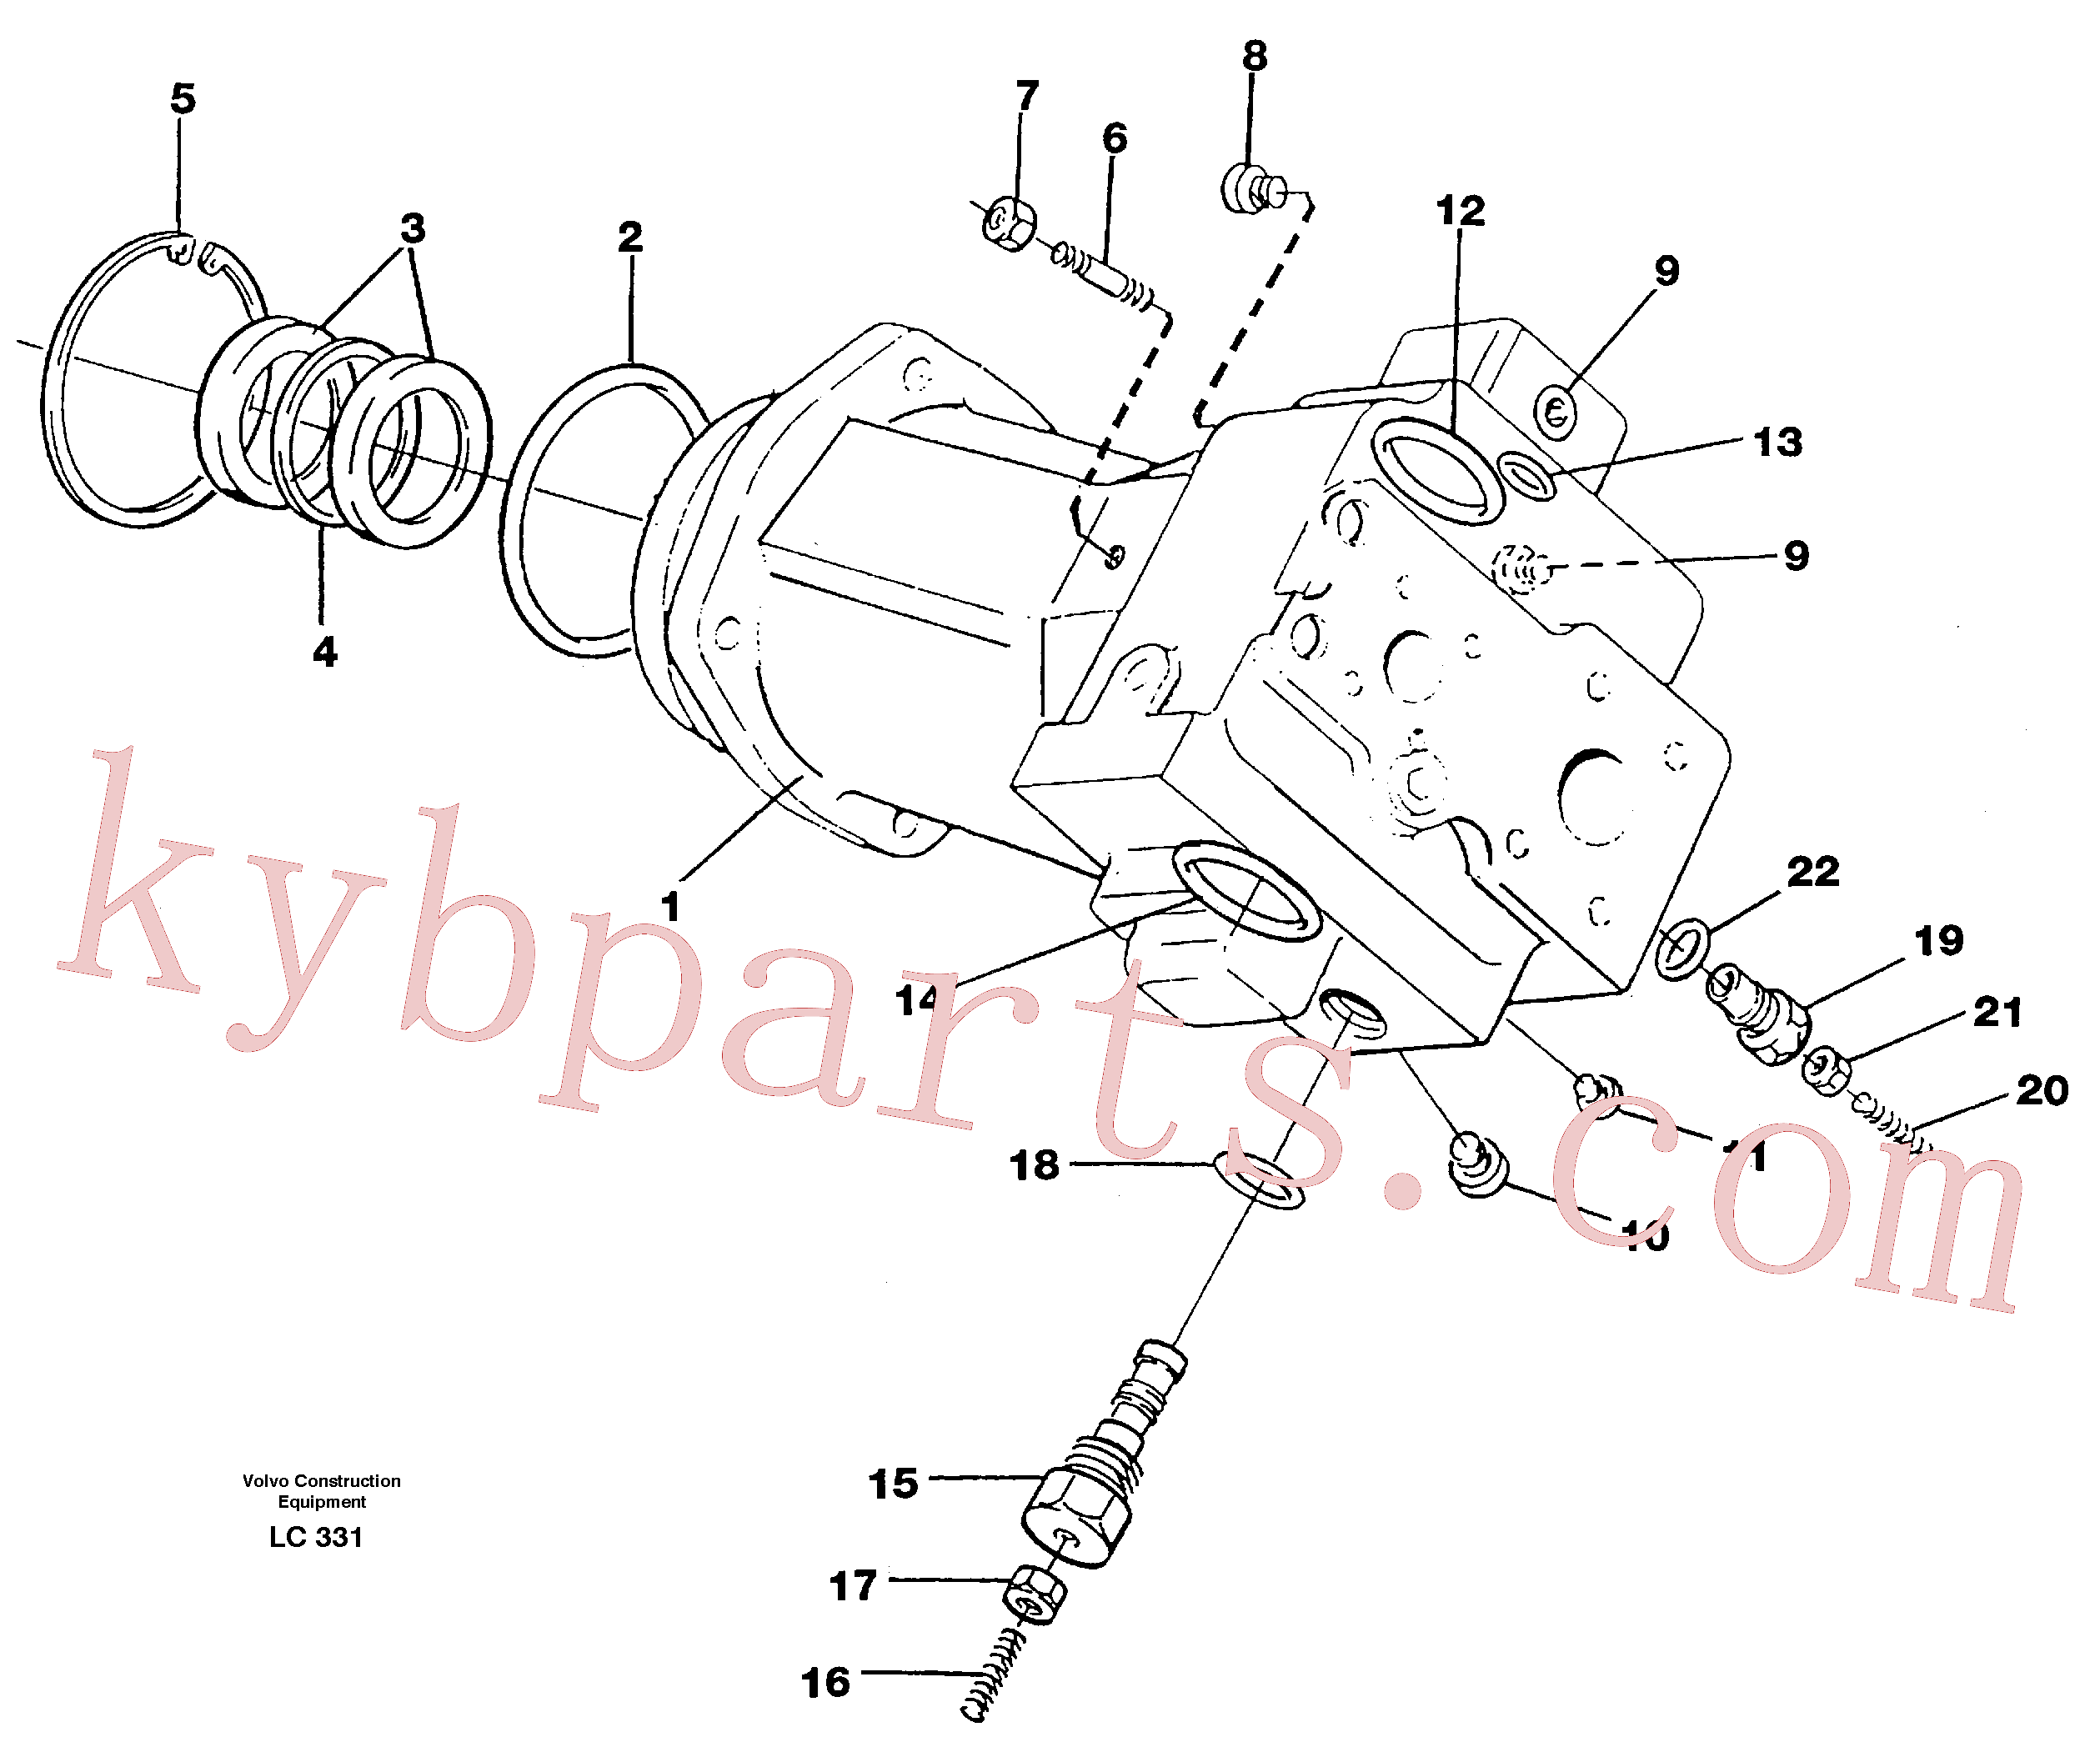 VOE11993505 for Volvo Hydraulic pump(LC331 assembly)